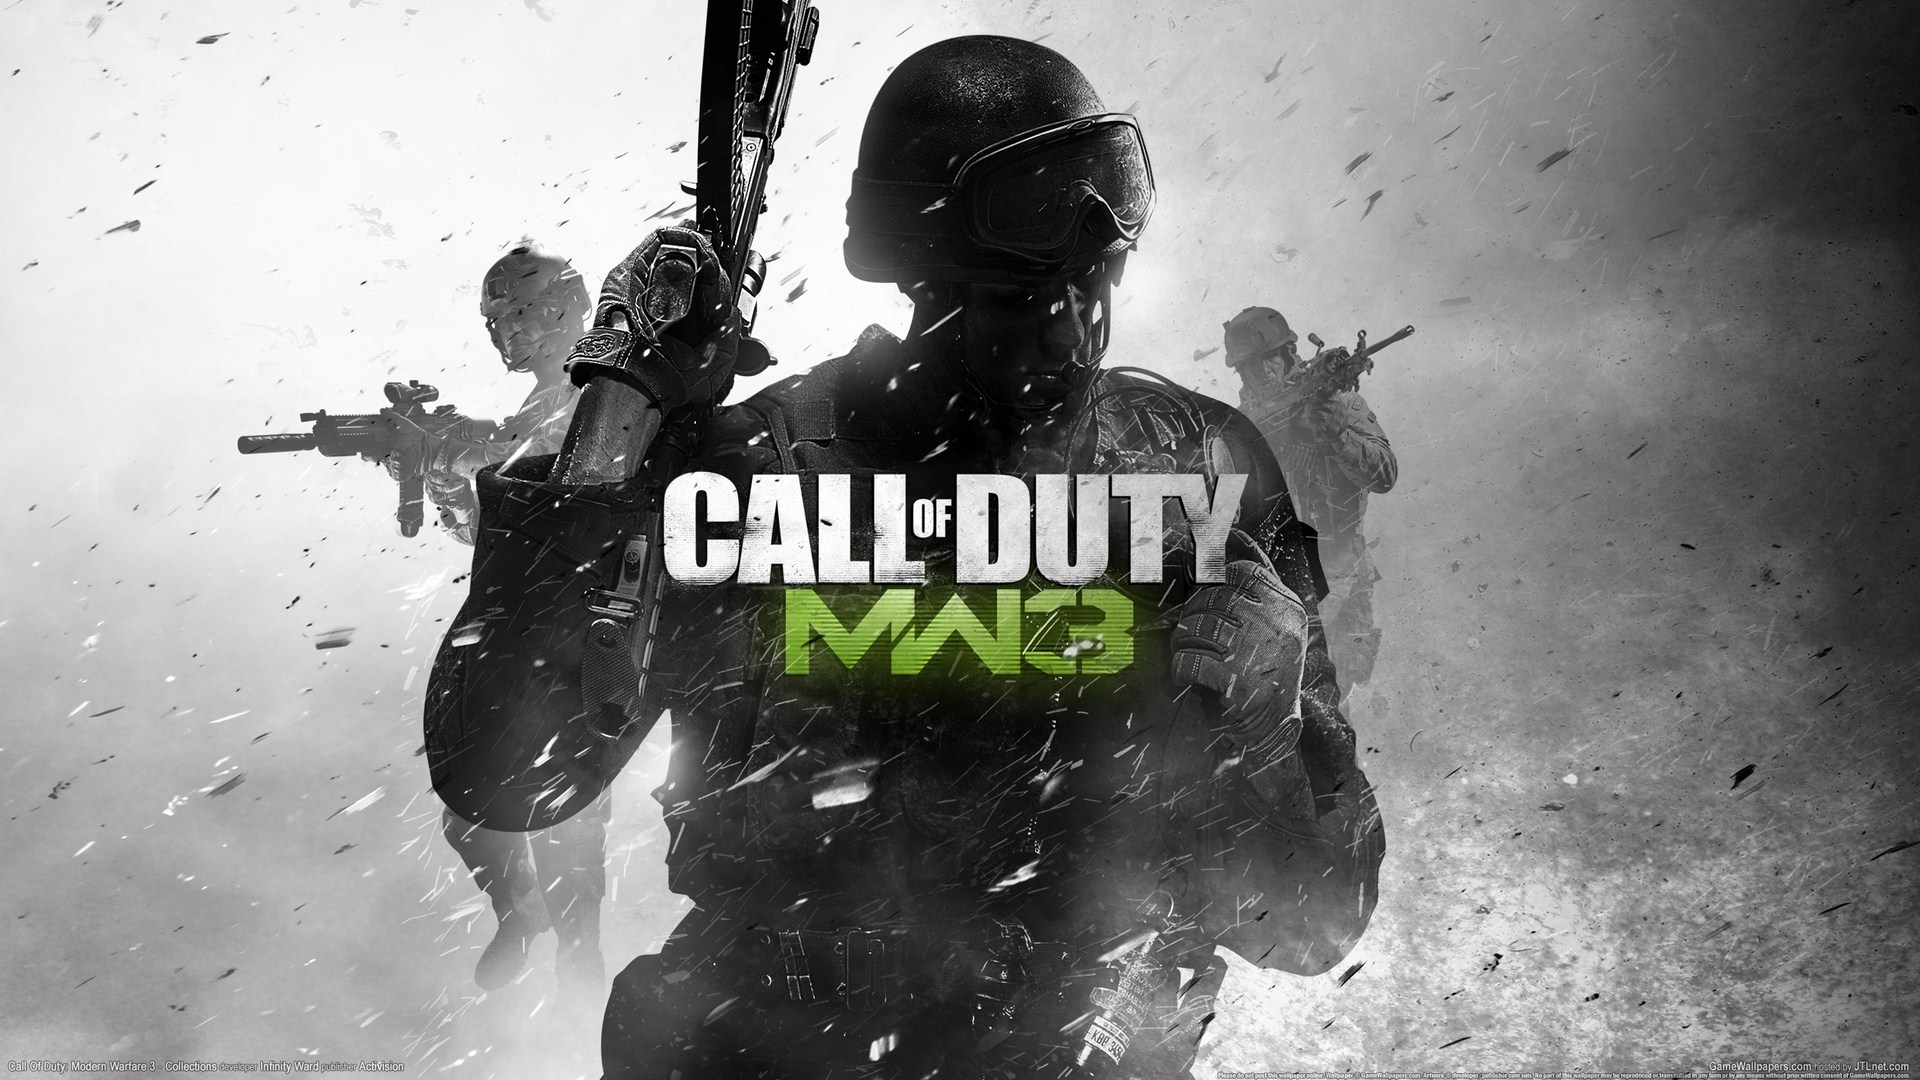 Wallpaper Call Of Duty MW3 Hot Game 1920x1080 Full HD Picture Image